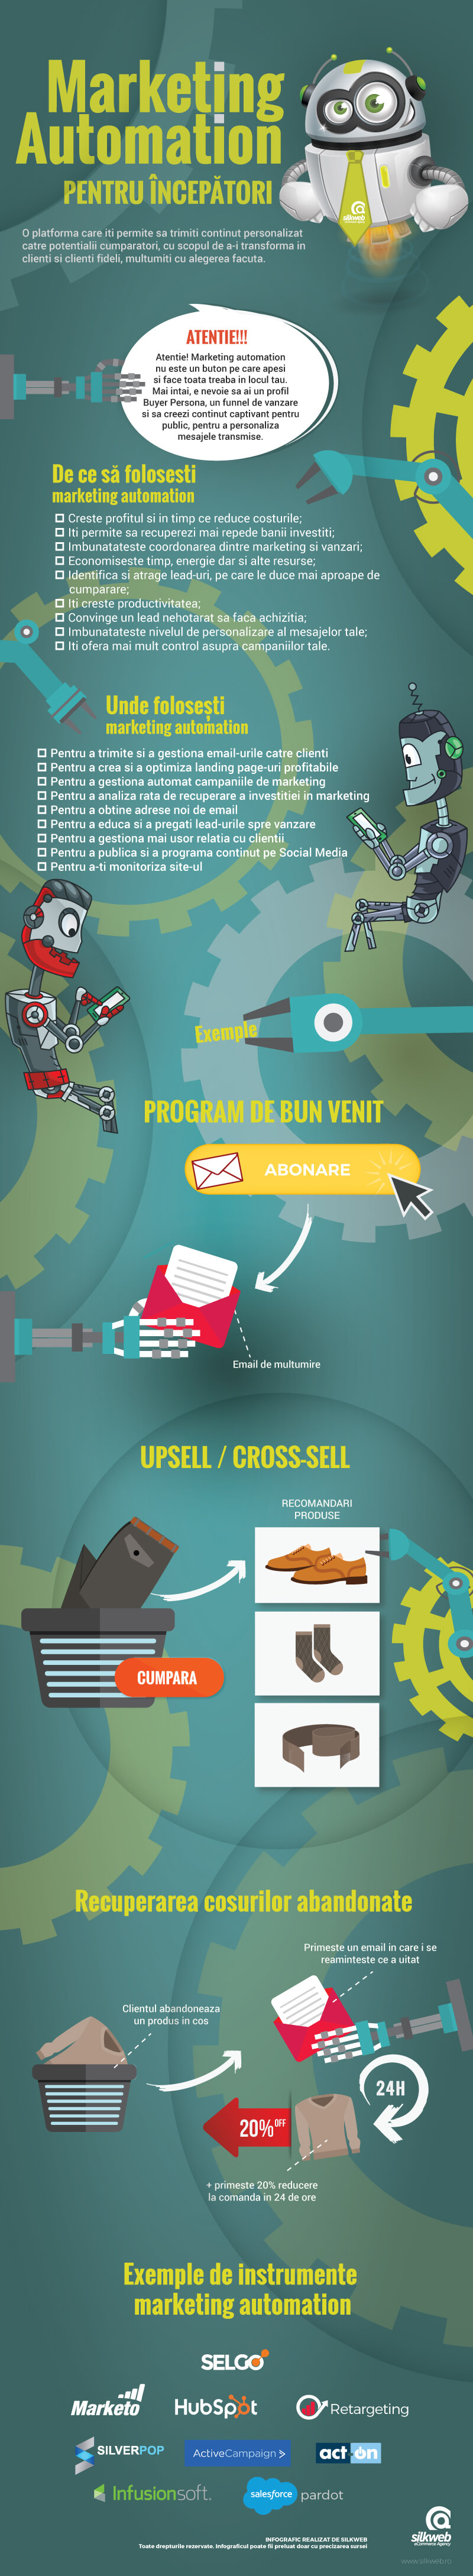 marketing-automation-infografic